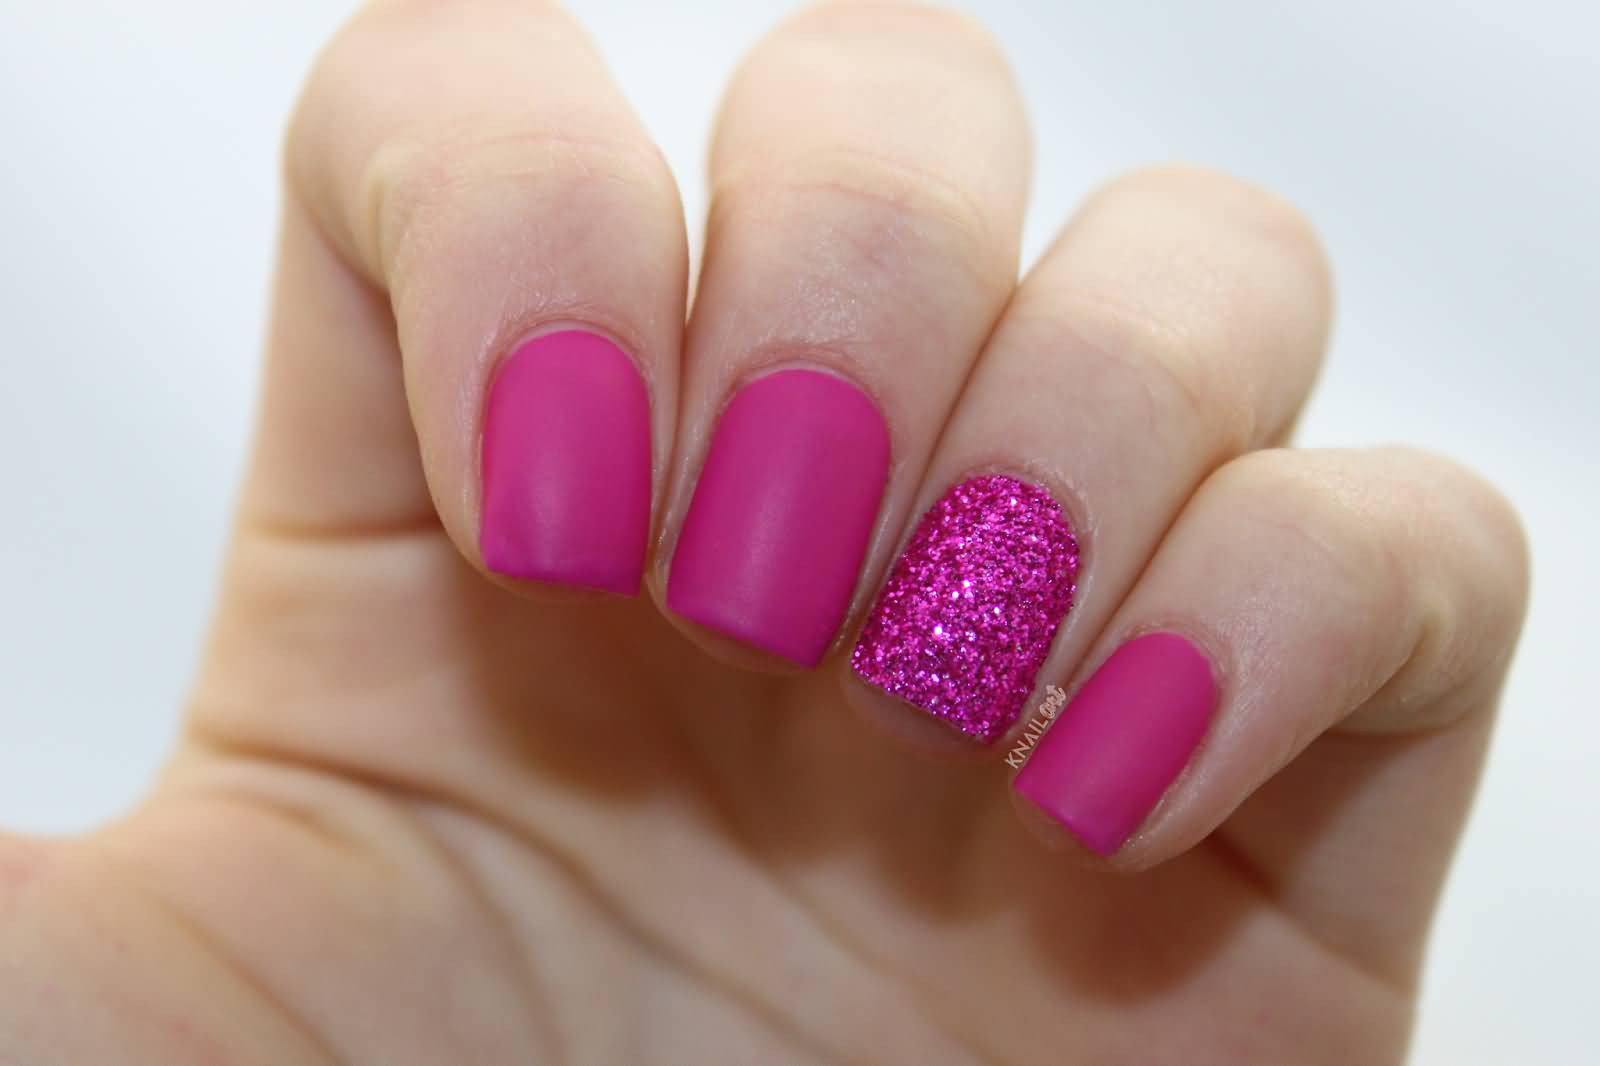 Pink And Glitter Nail Designs  65 Incredible Glitter Accent Nail Art Ideas You Need To